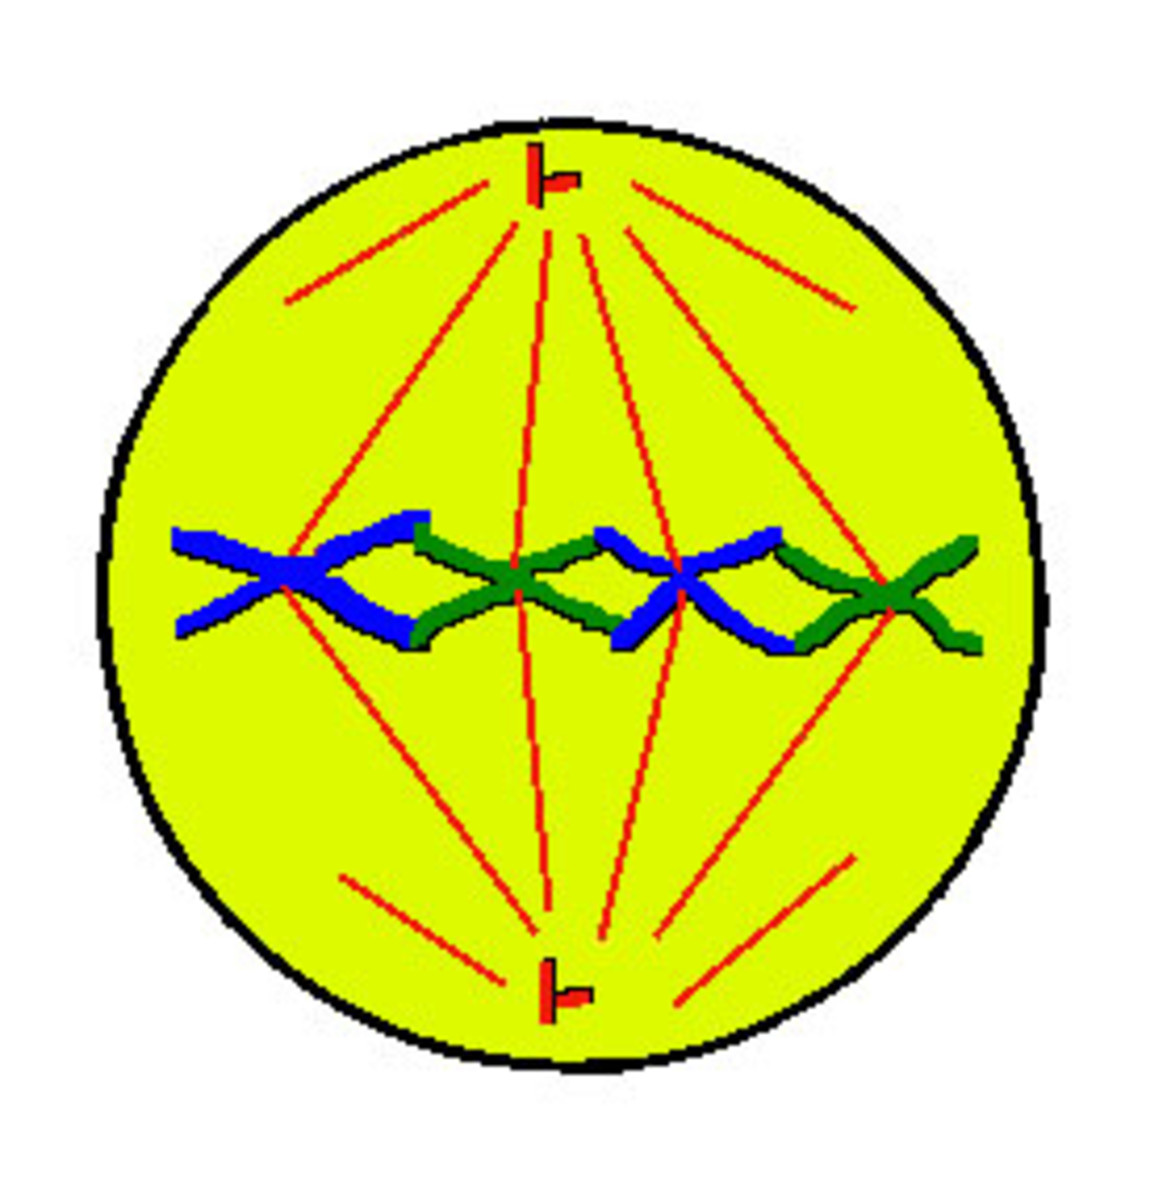 Metaphase - chromosomes line up in the centre and attach to centrioles via spindle fibres at the centromere.